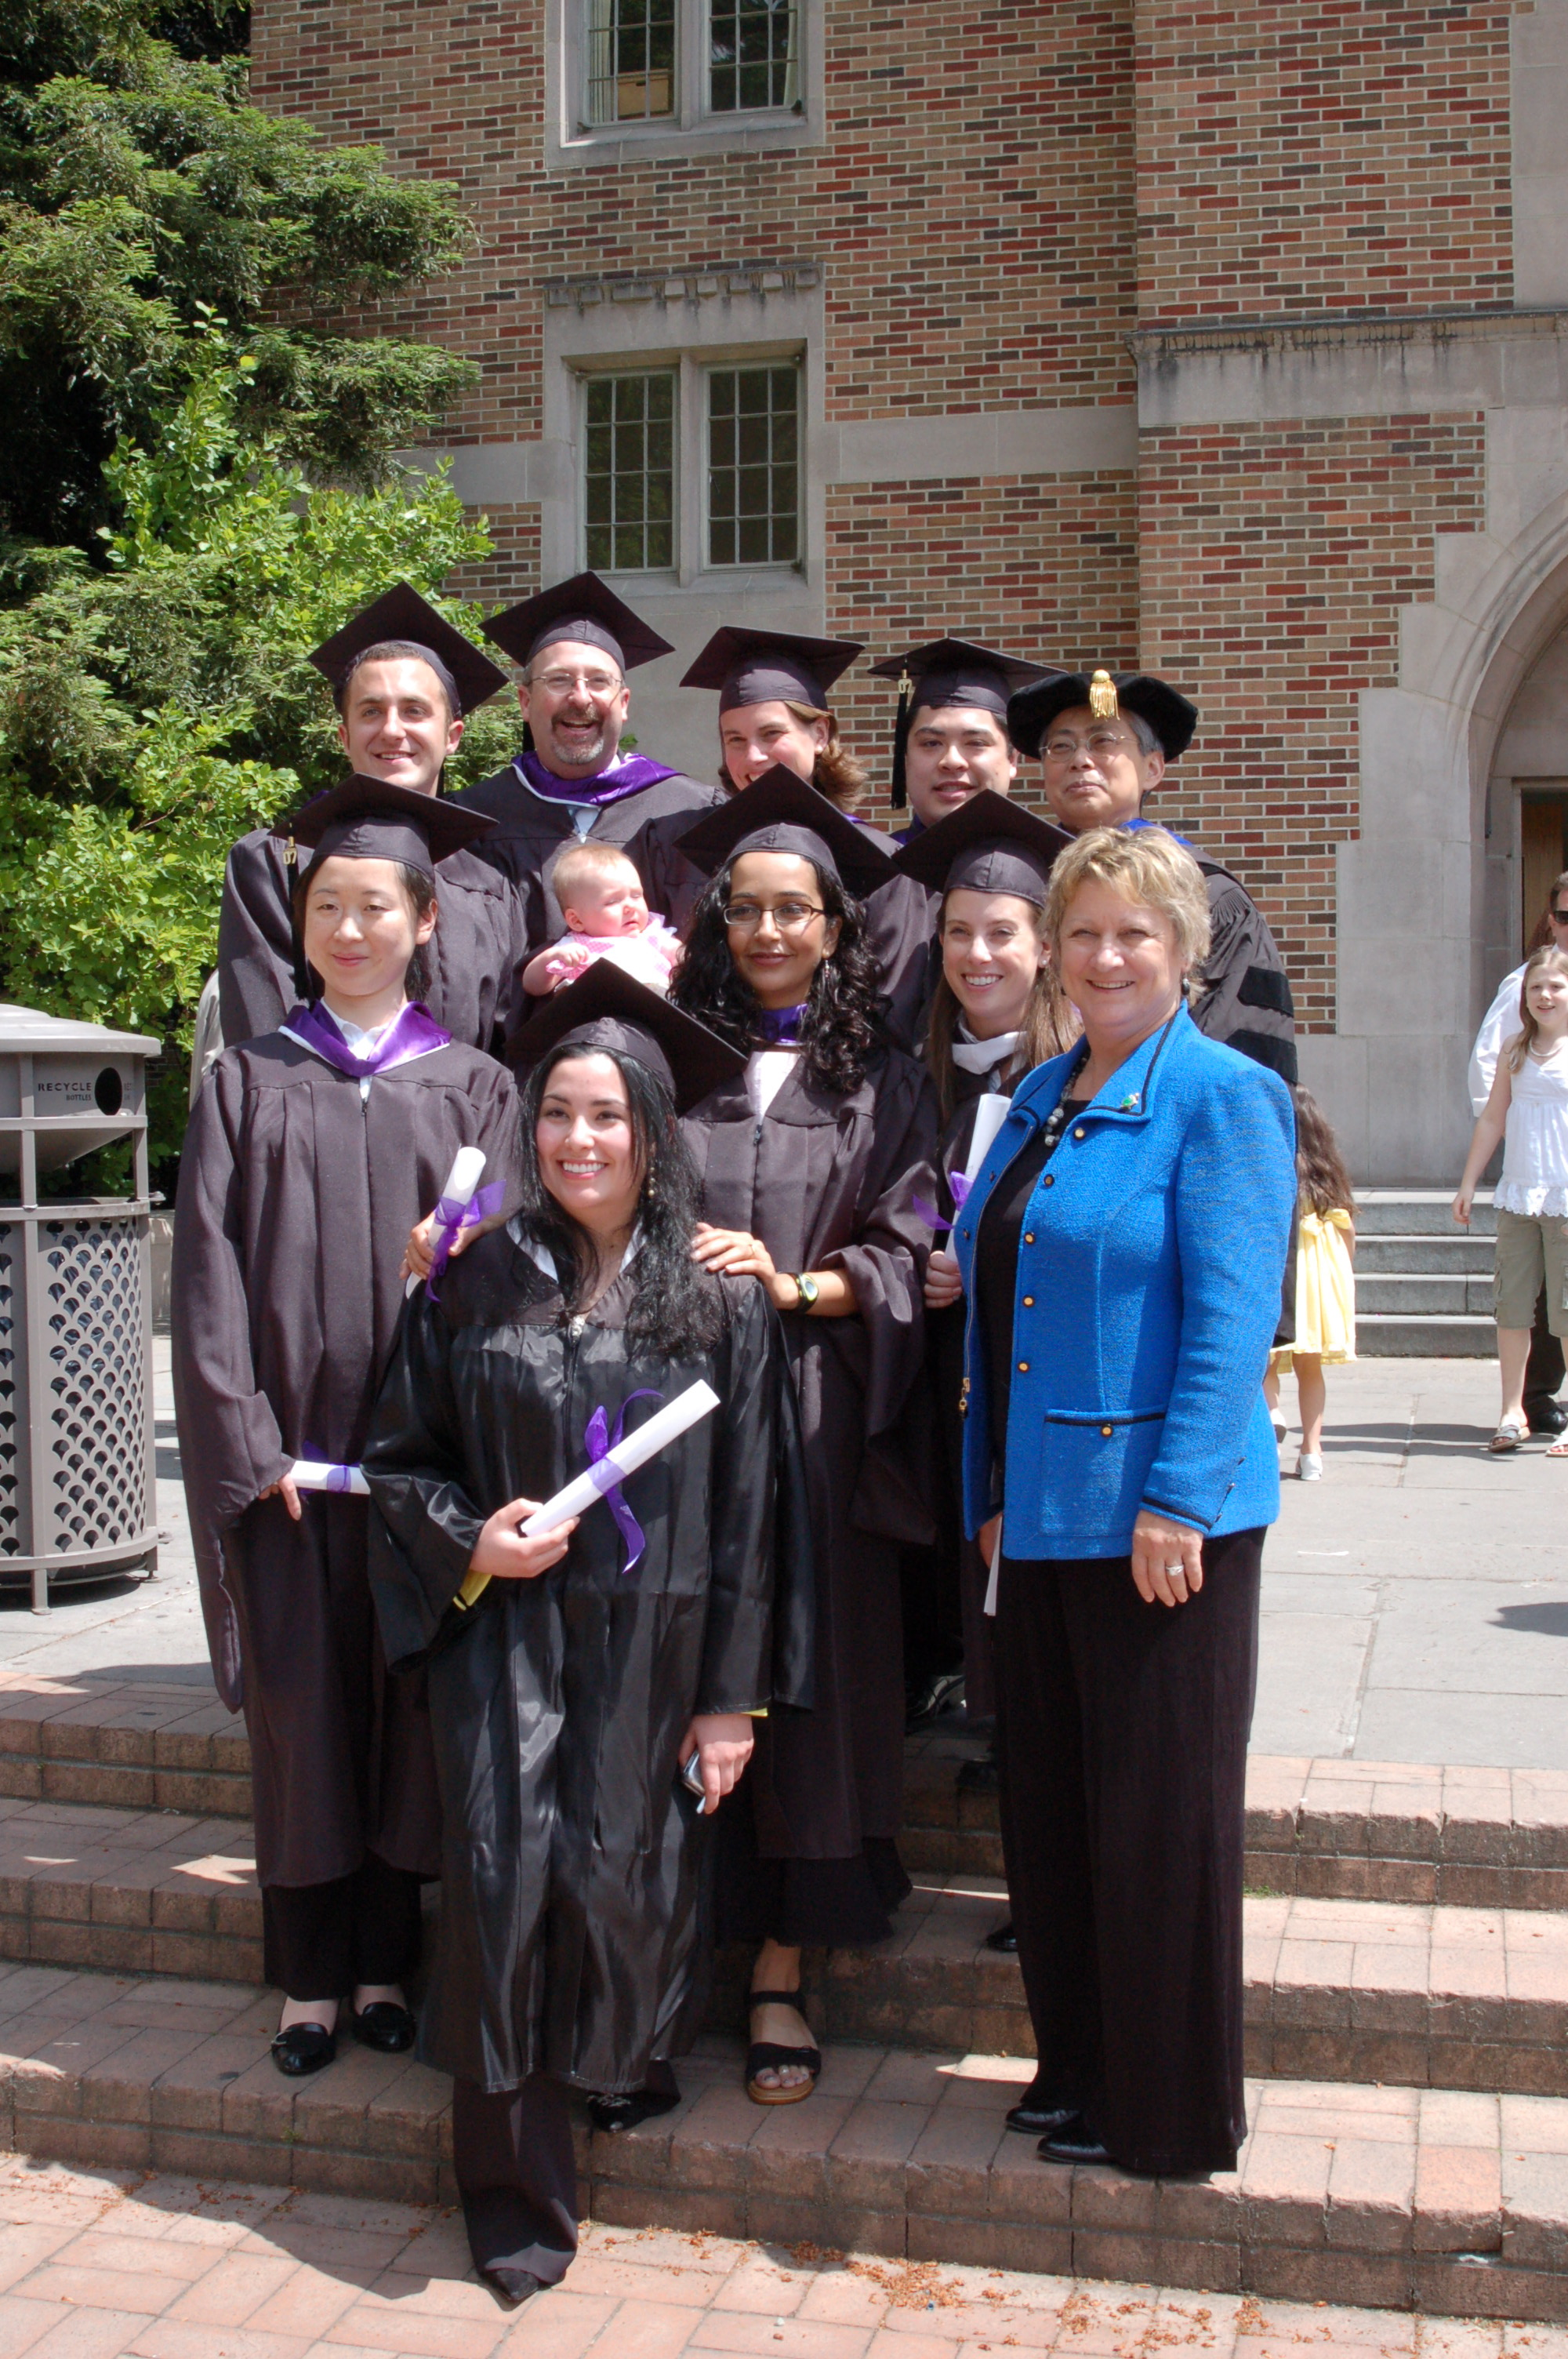 My graduate class from the M.C.D.M program at the University of Washington